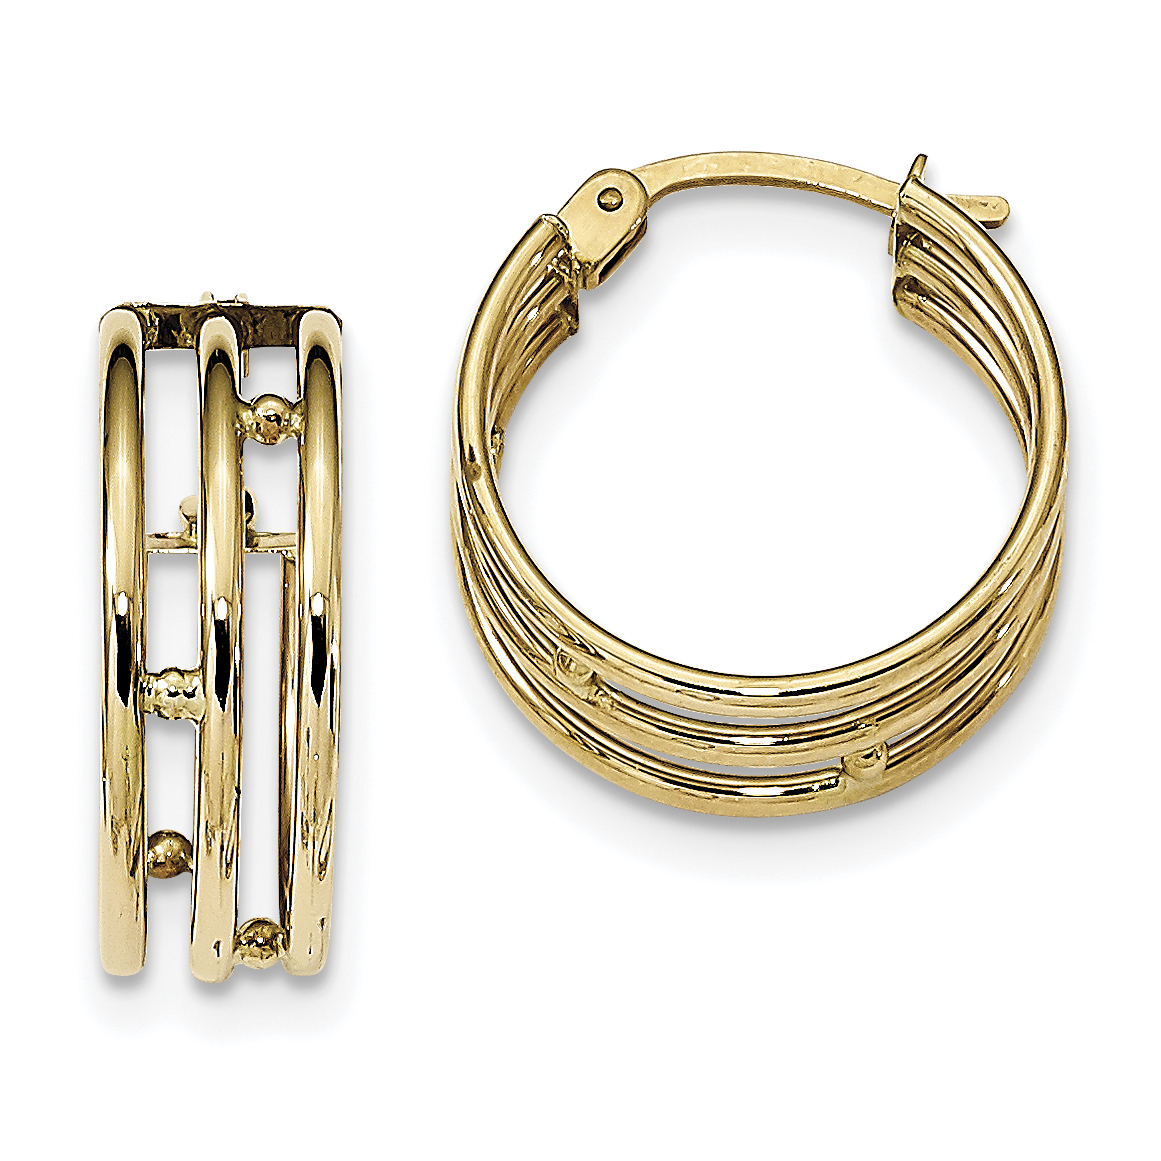 14K Yellow Gold Polished 3 Strand Hoops - image 2 of 2